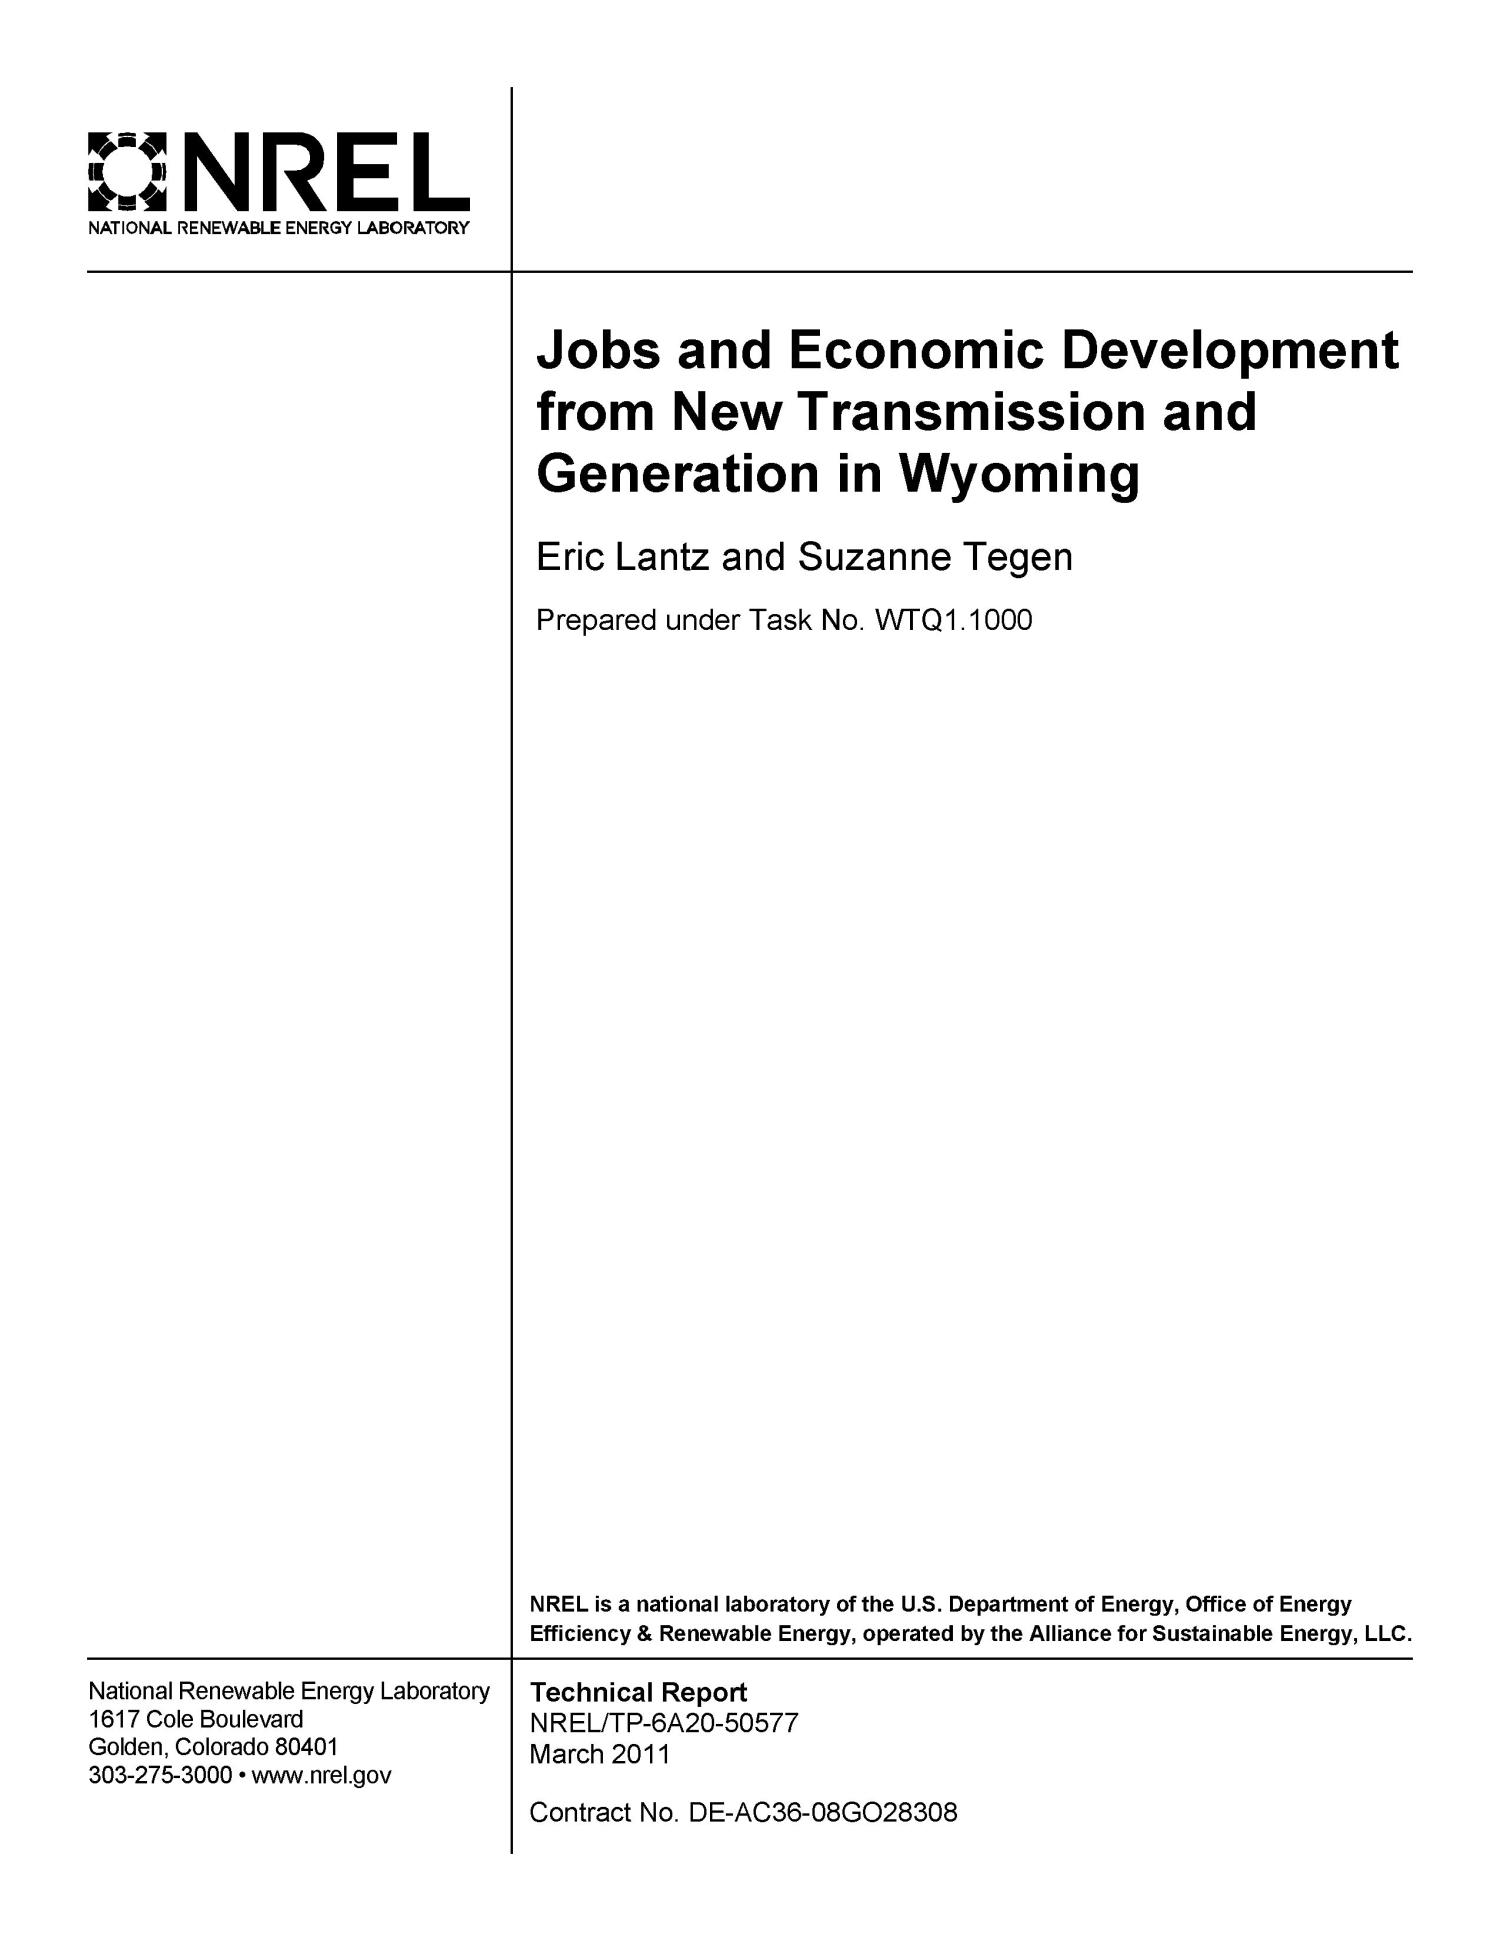 Jobs and Economic Development from New Transmission and Generation in Wyoming                                                                                                      [Sequence #]: 2 of 73